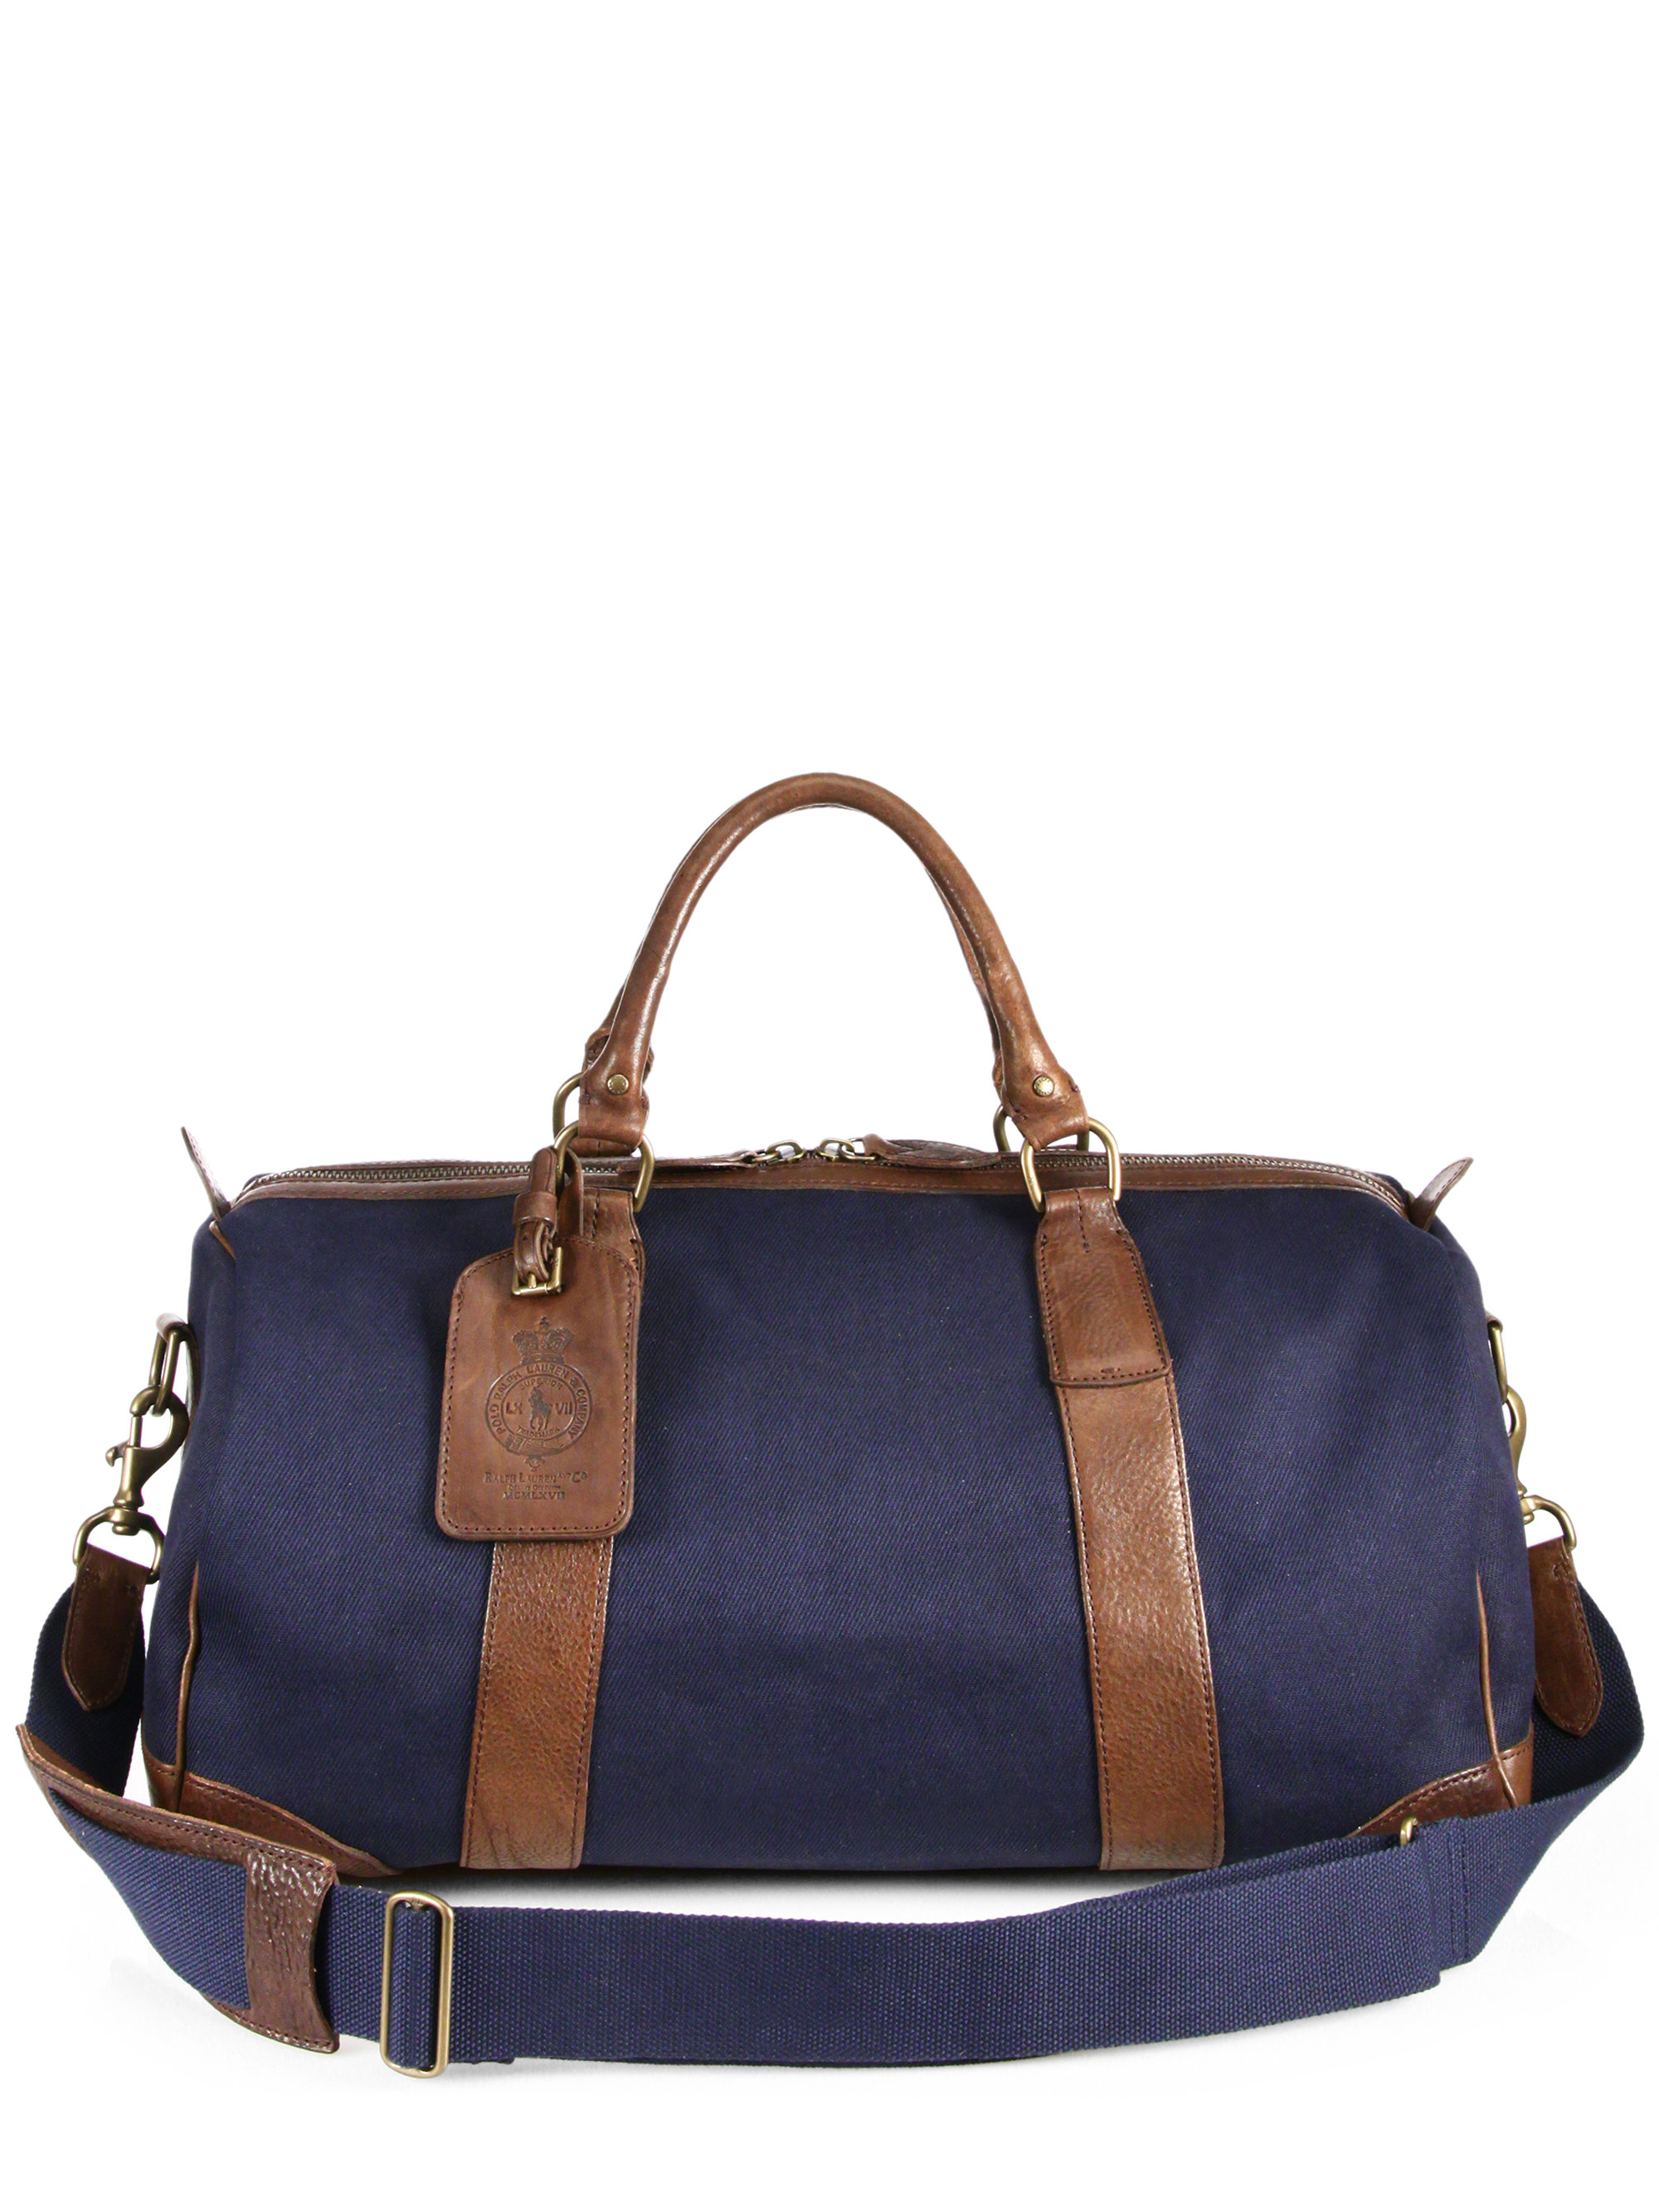 186b69f3a494 ... closeout lyst polo ralph lauren waxed twill gym bag in blue for men  d9d6f e92a5